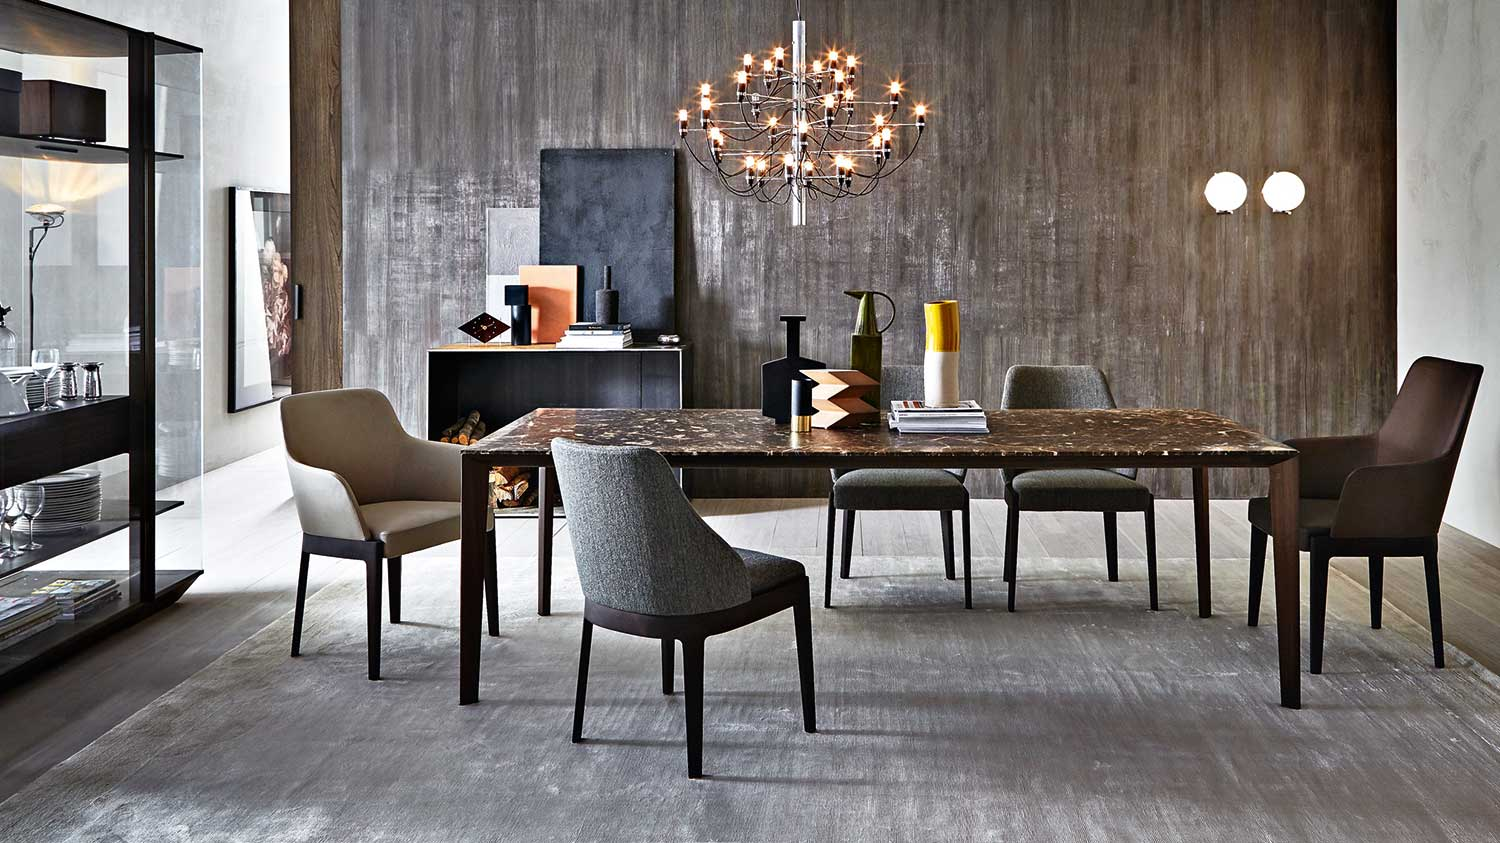 Chelsea Dining Chair By Molteni Hub Furniture Lighting